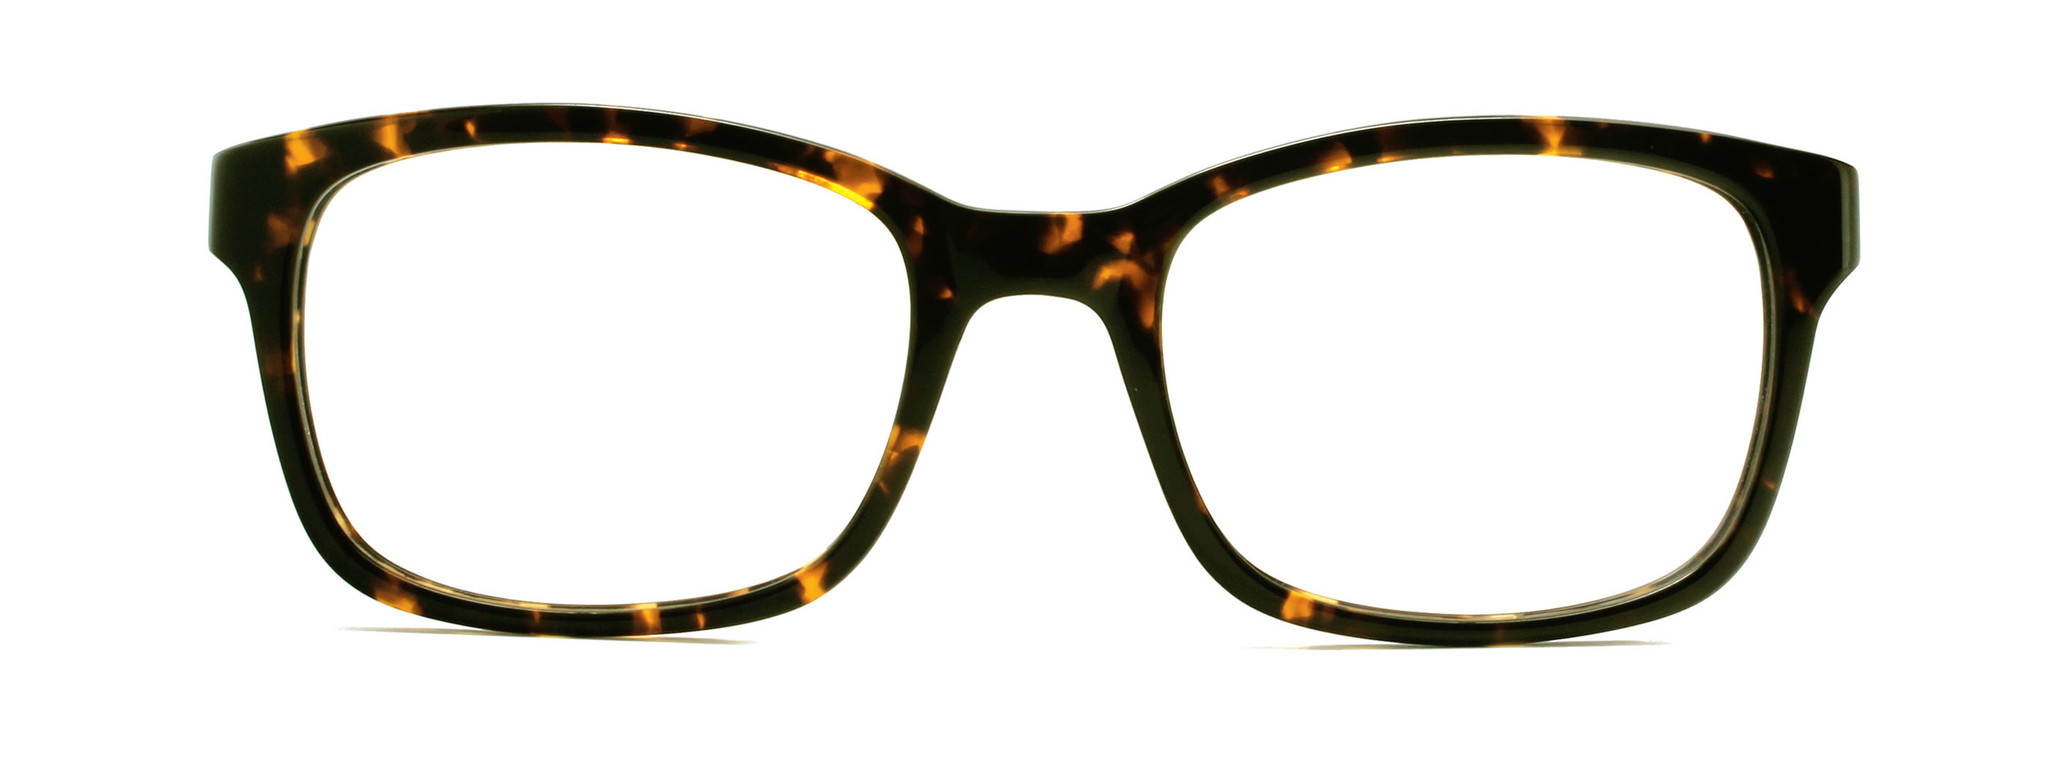 Kensington Glasses Frame : Glasses for USD165 Focus by Discerning Eye Iowa City, IA